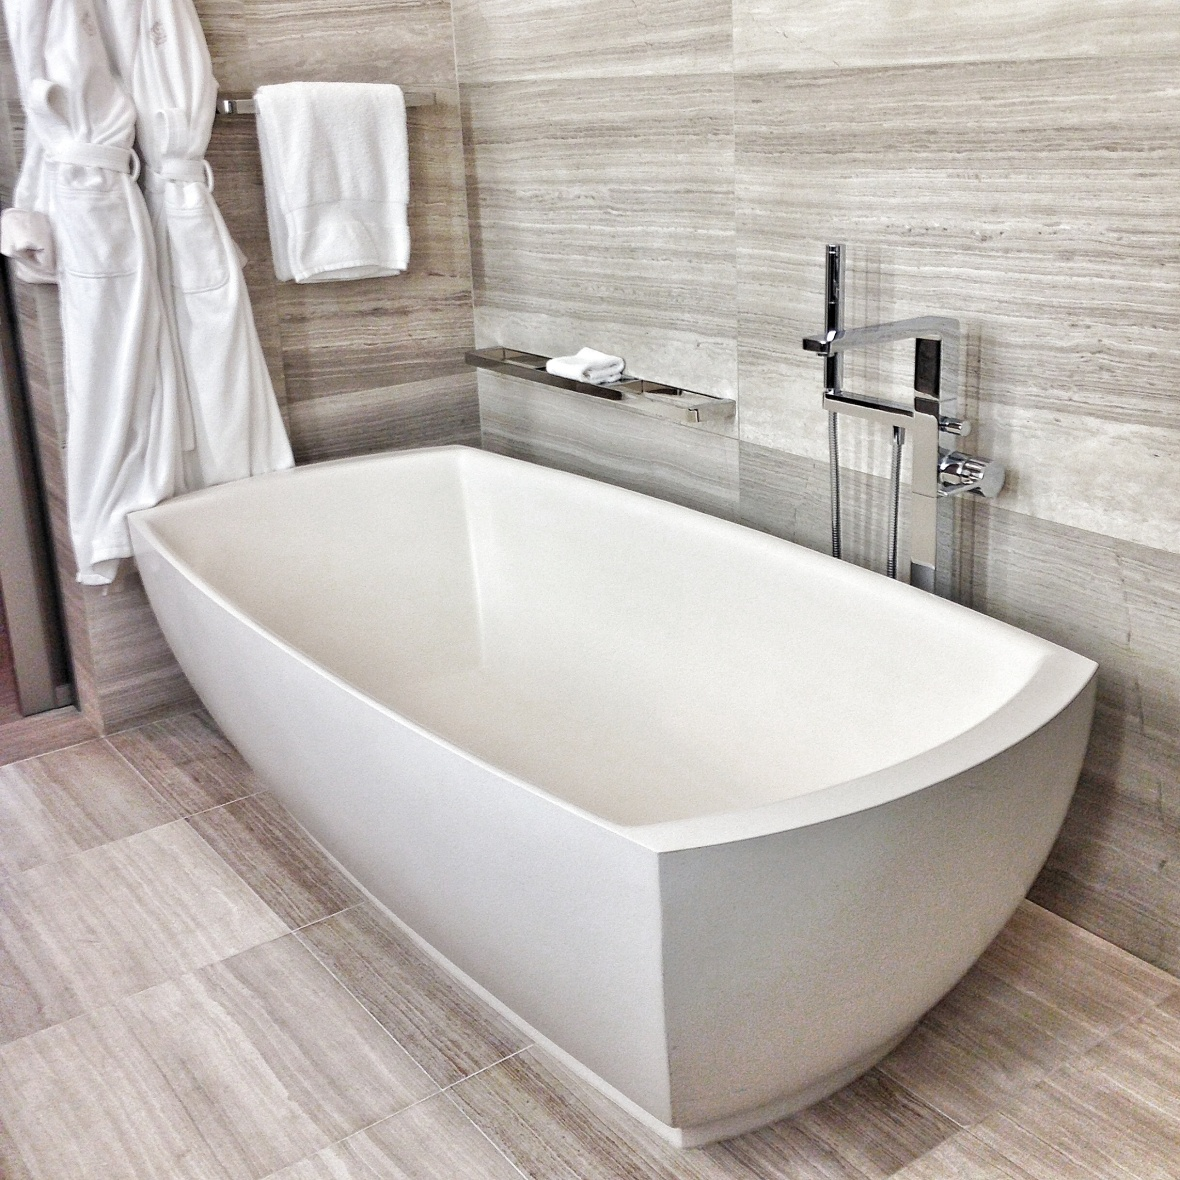 Four Seasons Toronto Bathtub